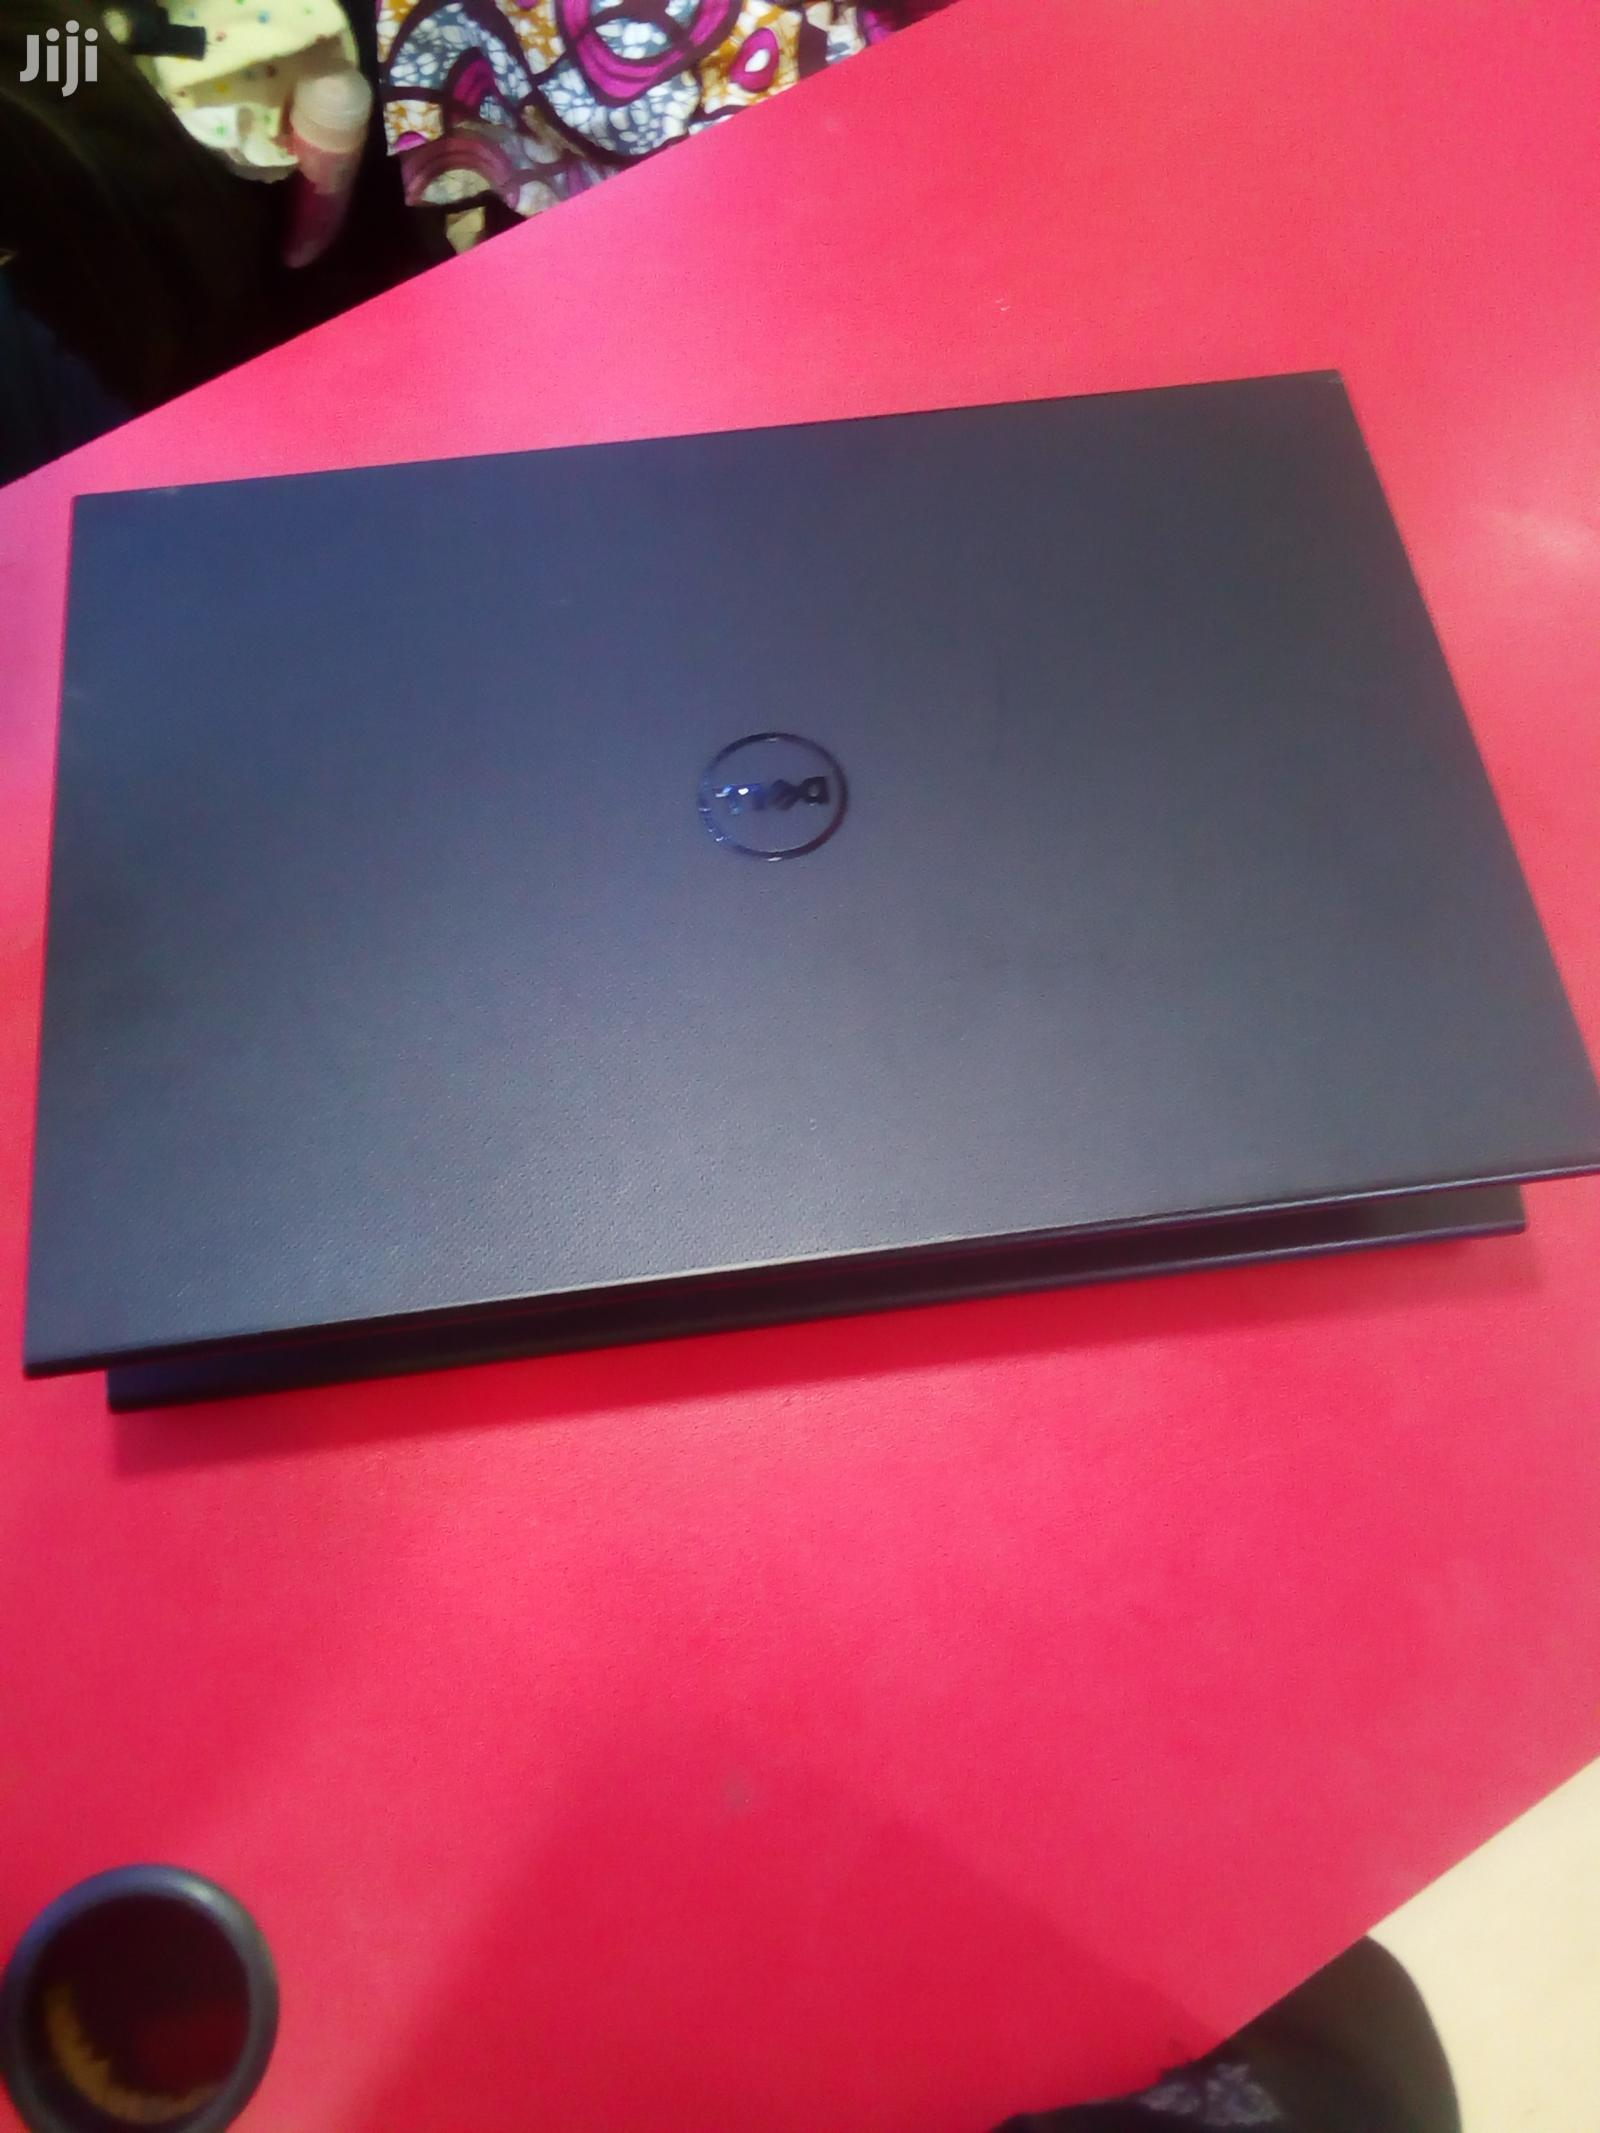 Laptop Dell Inspiron 3542 4GB Intel Core I5 HDD 500GB   Laptops & Computers for sale in Kampala, Central Region, Uganda